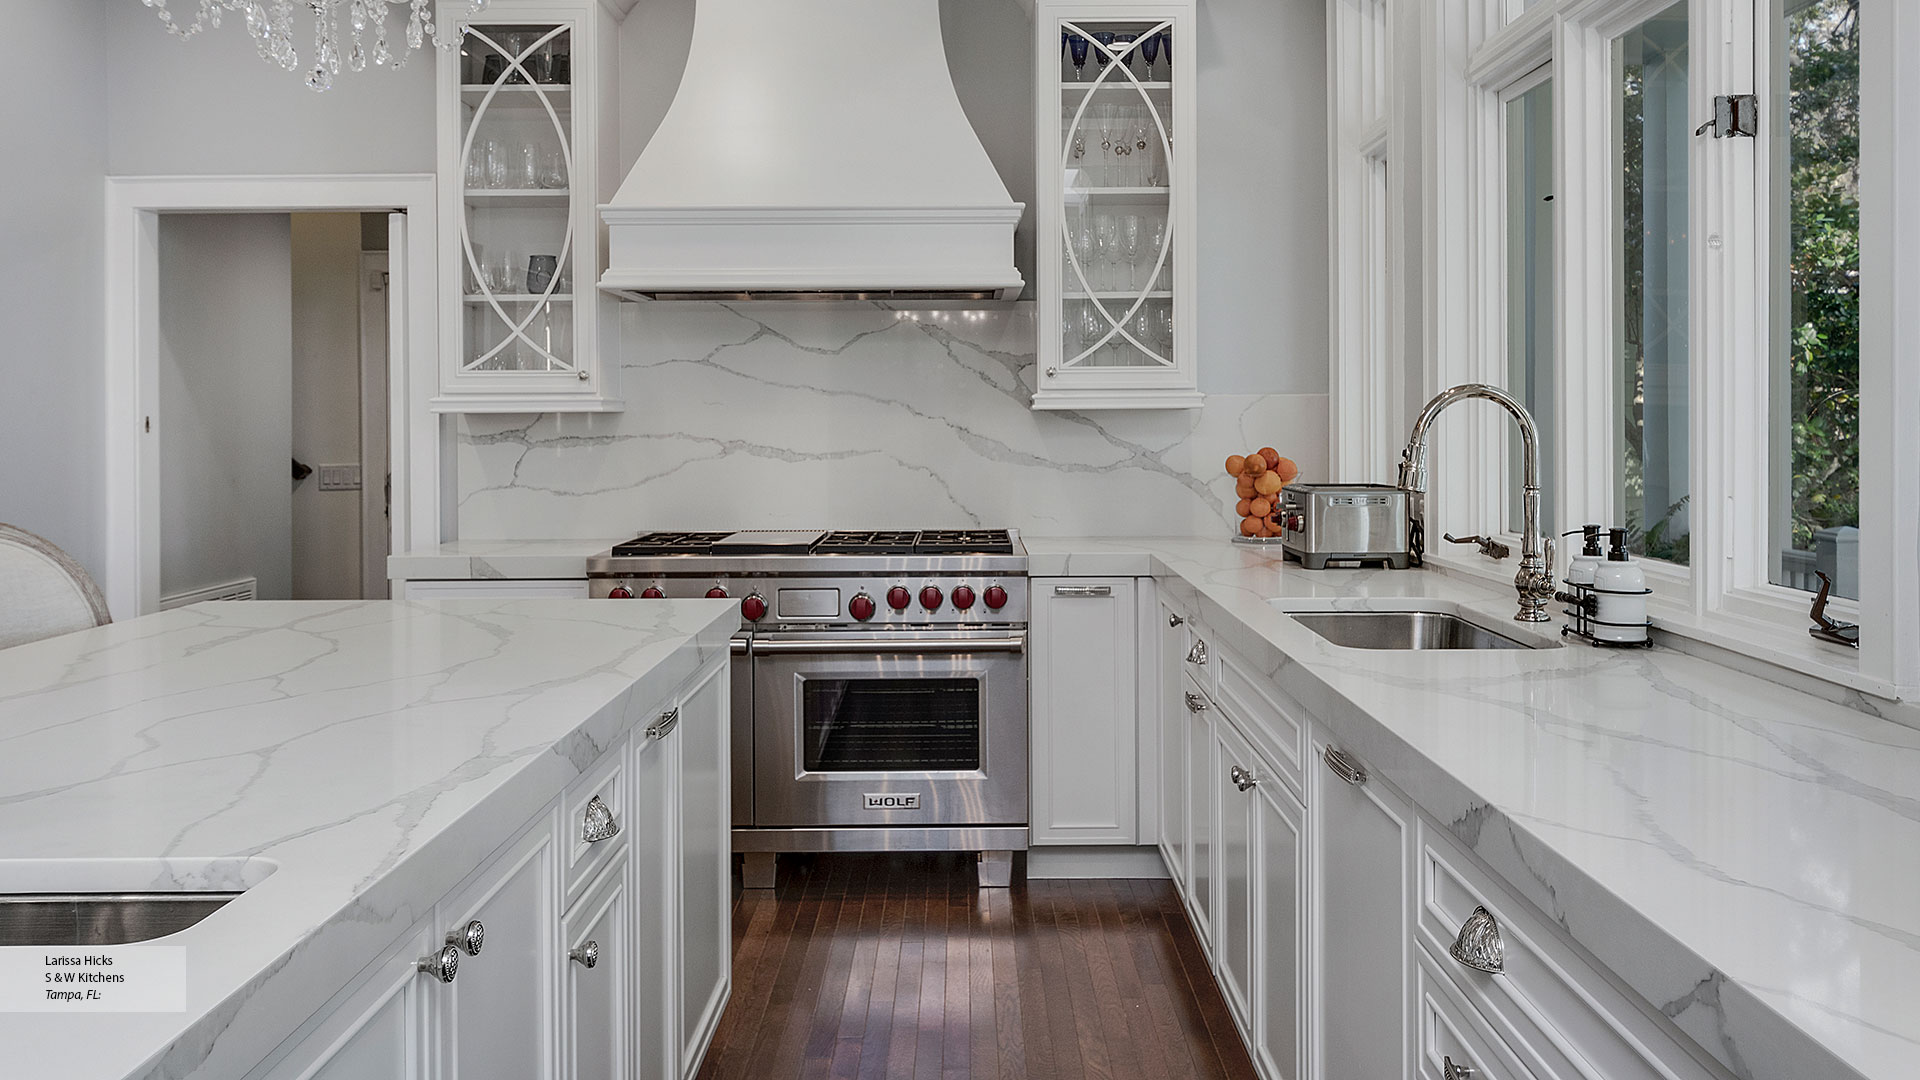 Transitional Maple Kitchen Cabinets in Pearl